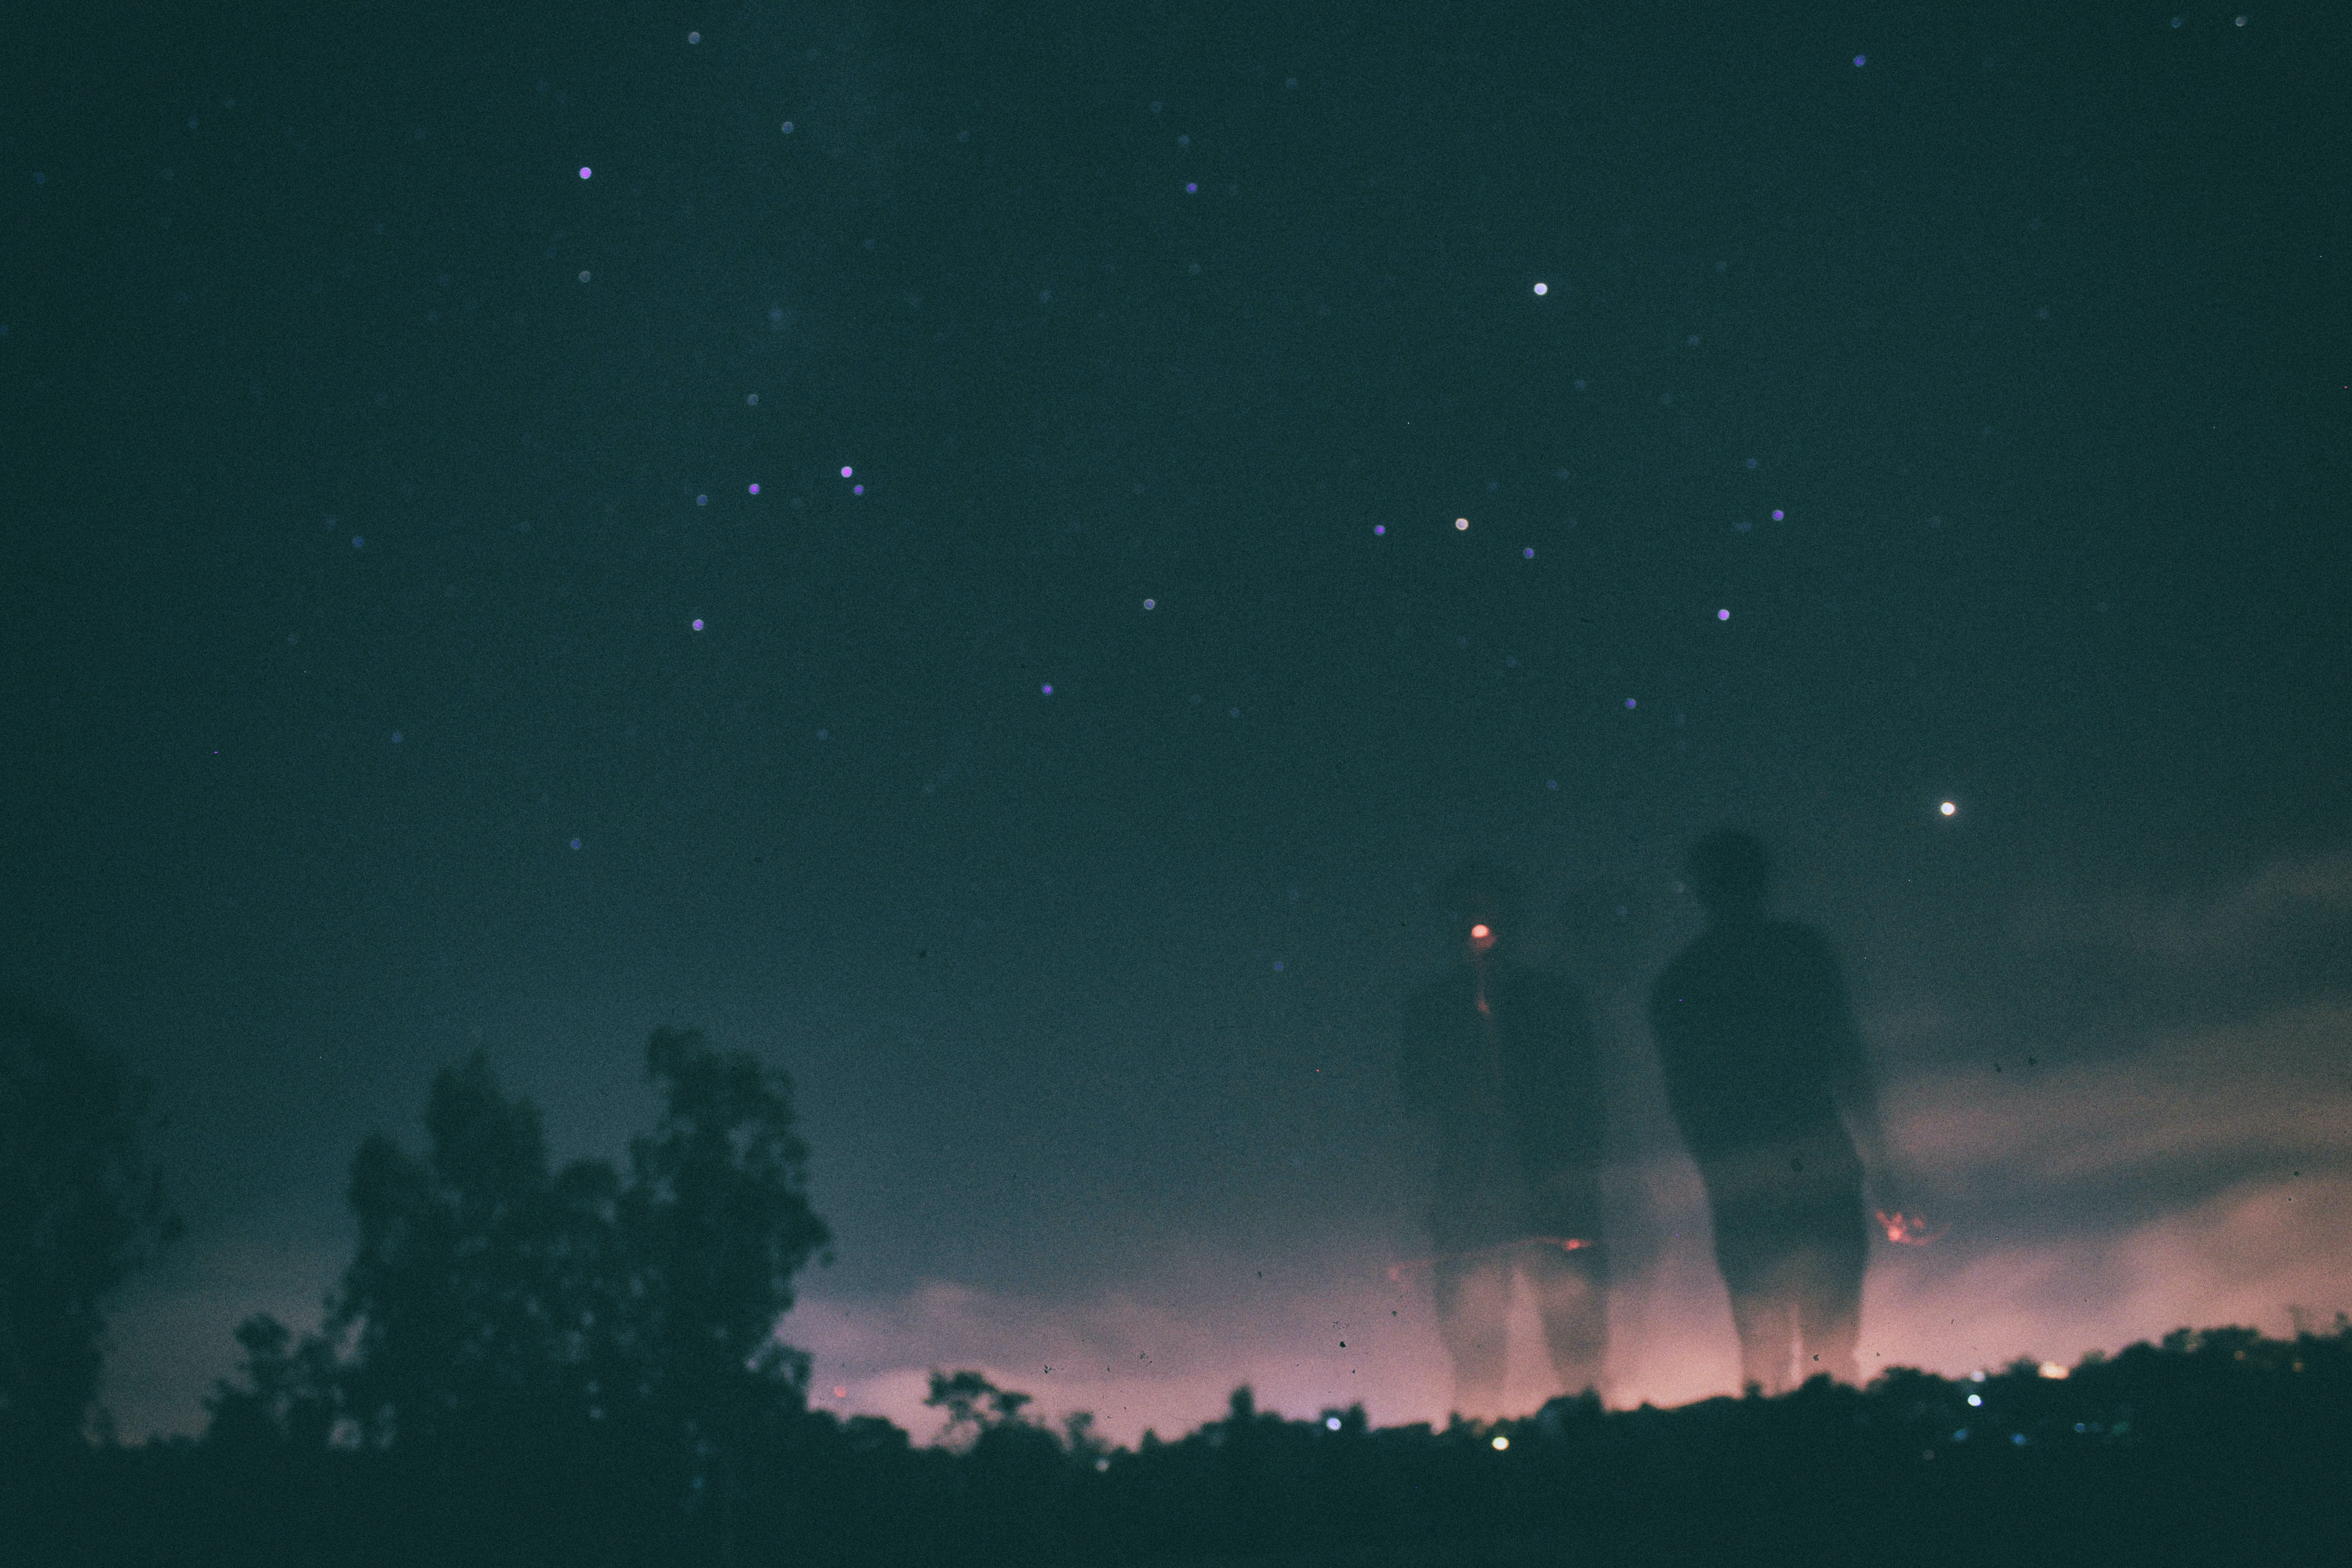 silhouette of trees under dark sky with stars